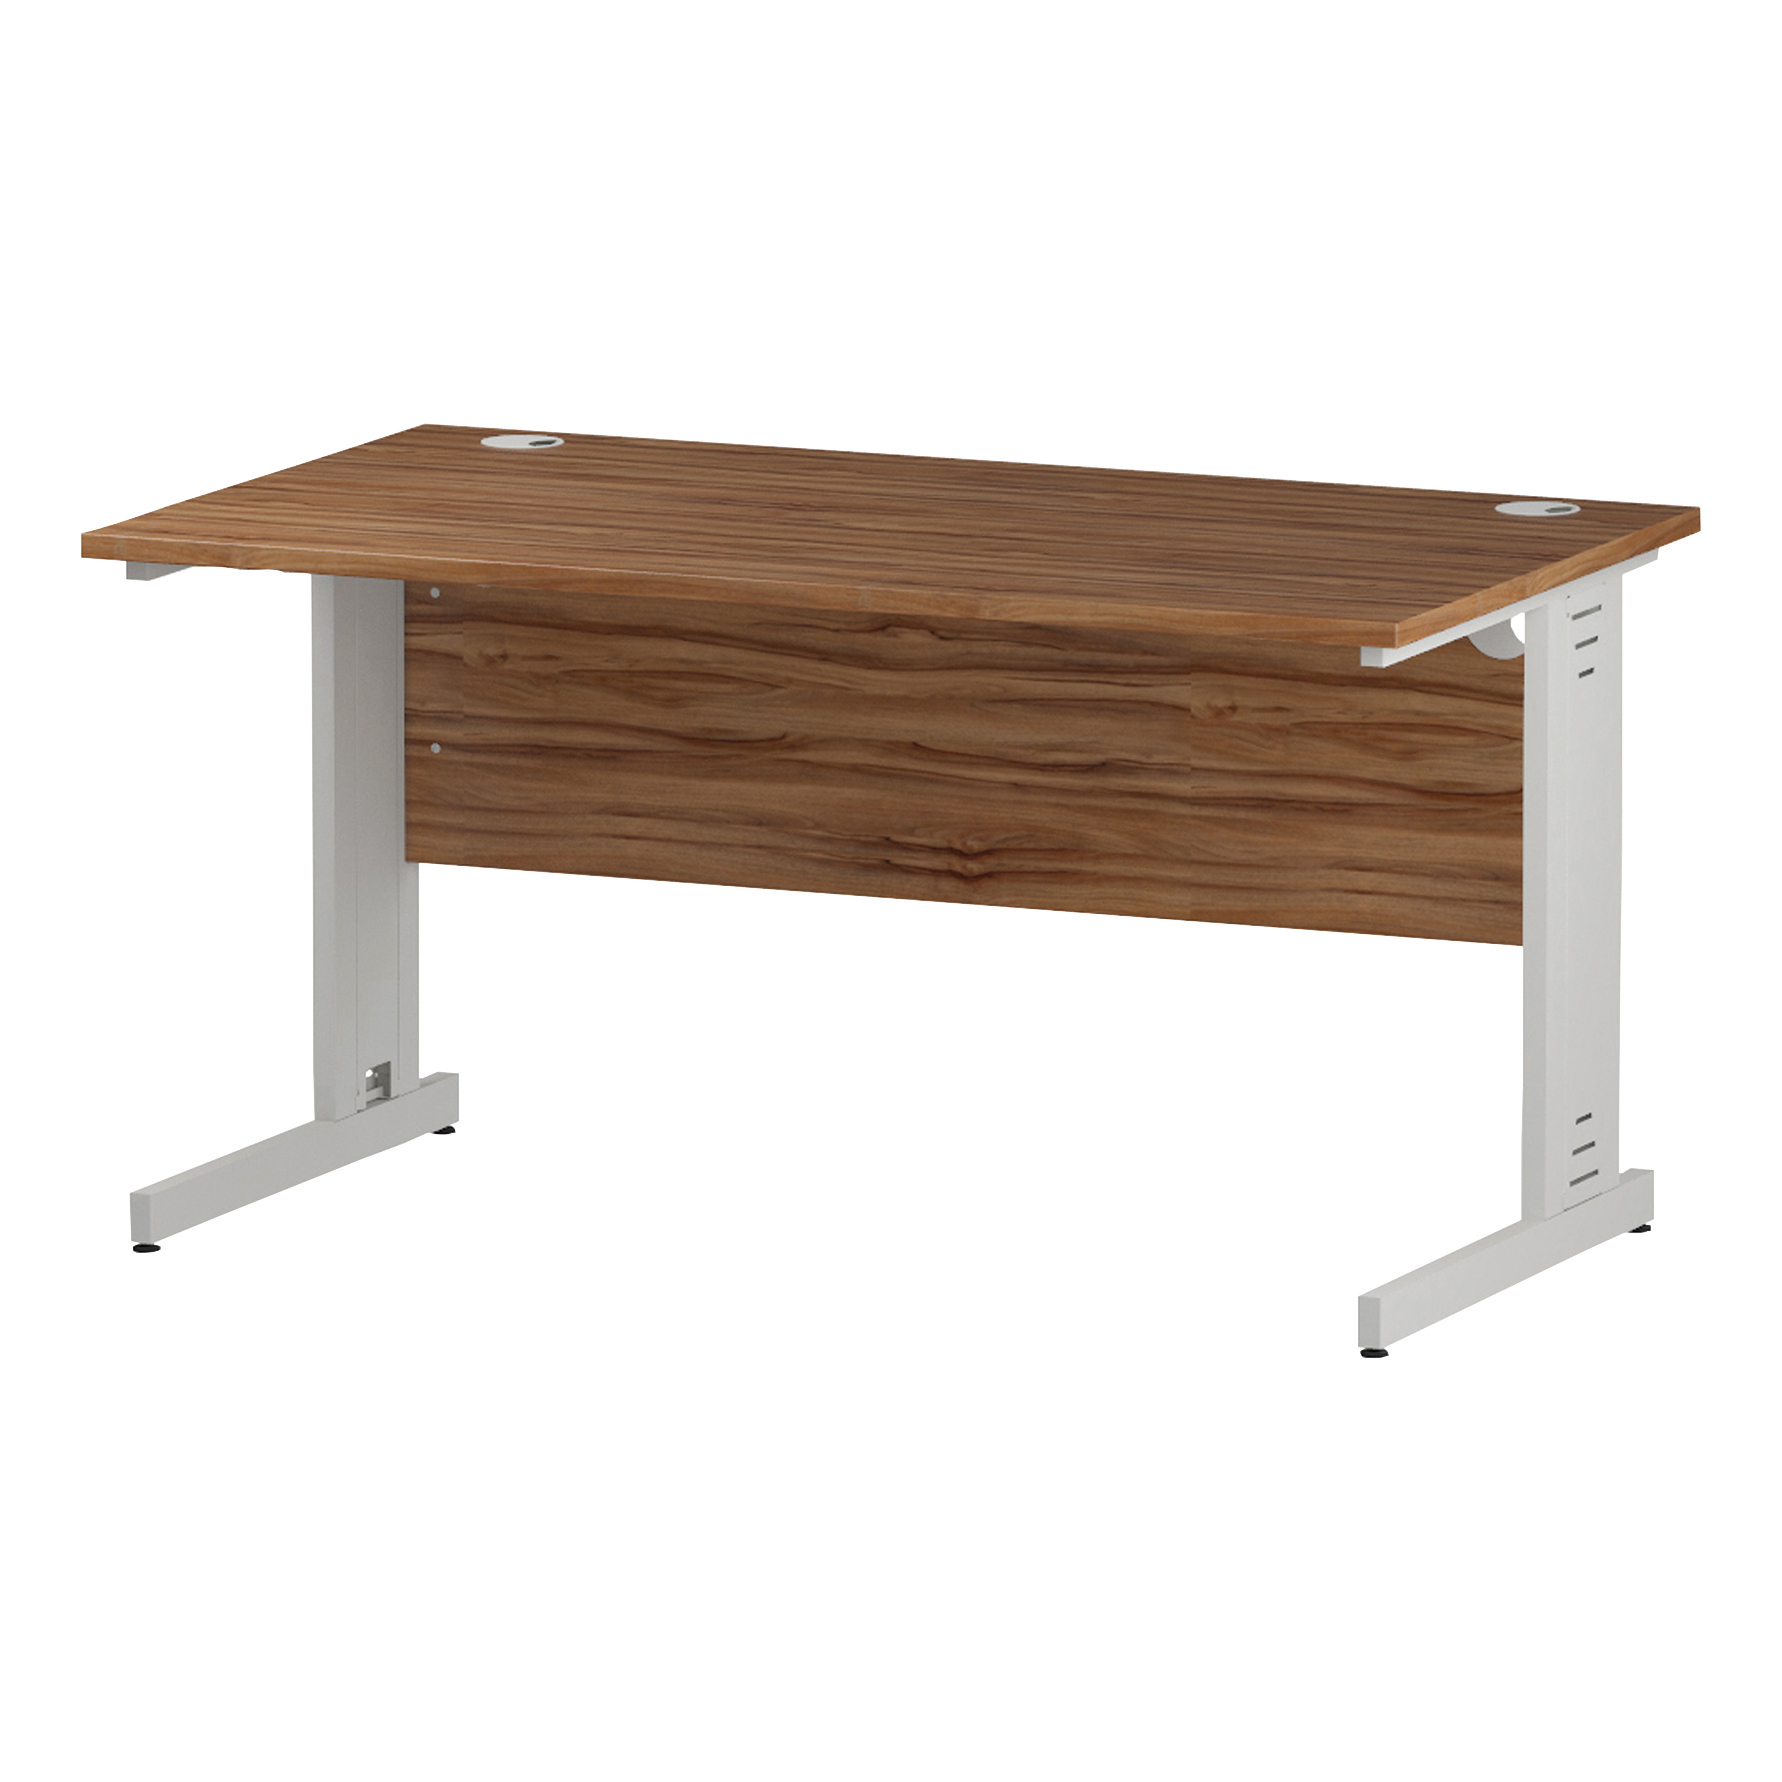 Trexus Rectangular Desk White Cable Managed Leg 1400x800mm Walnut Ref I001996